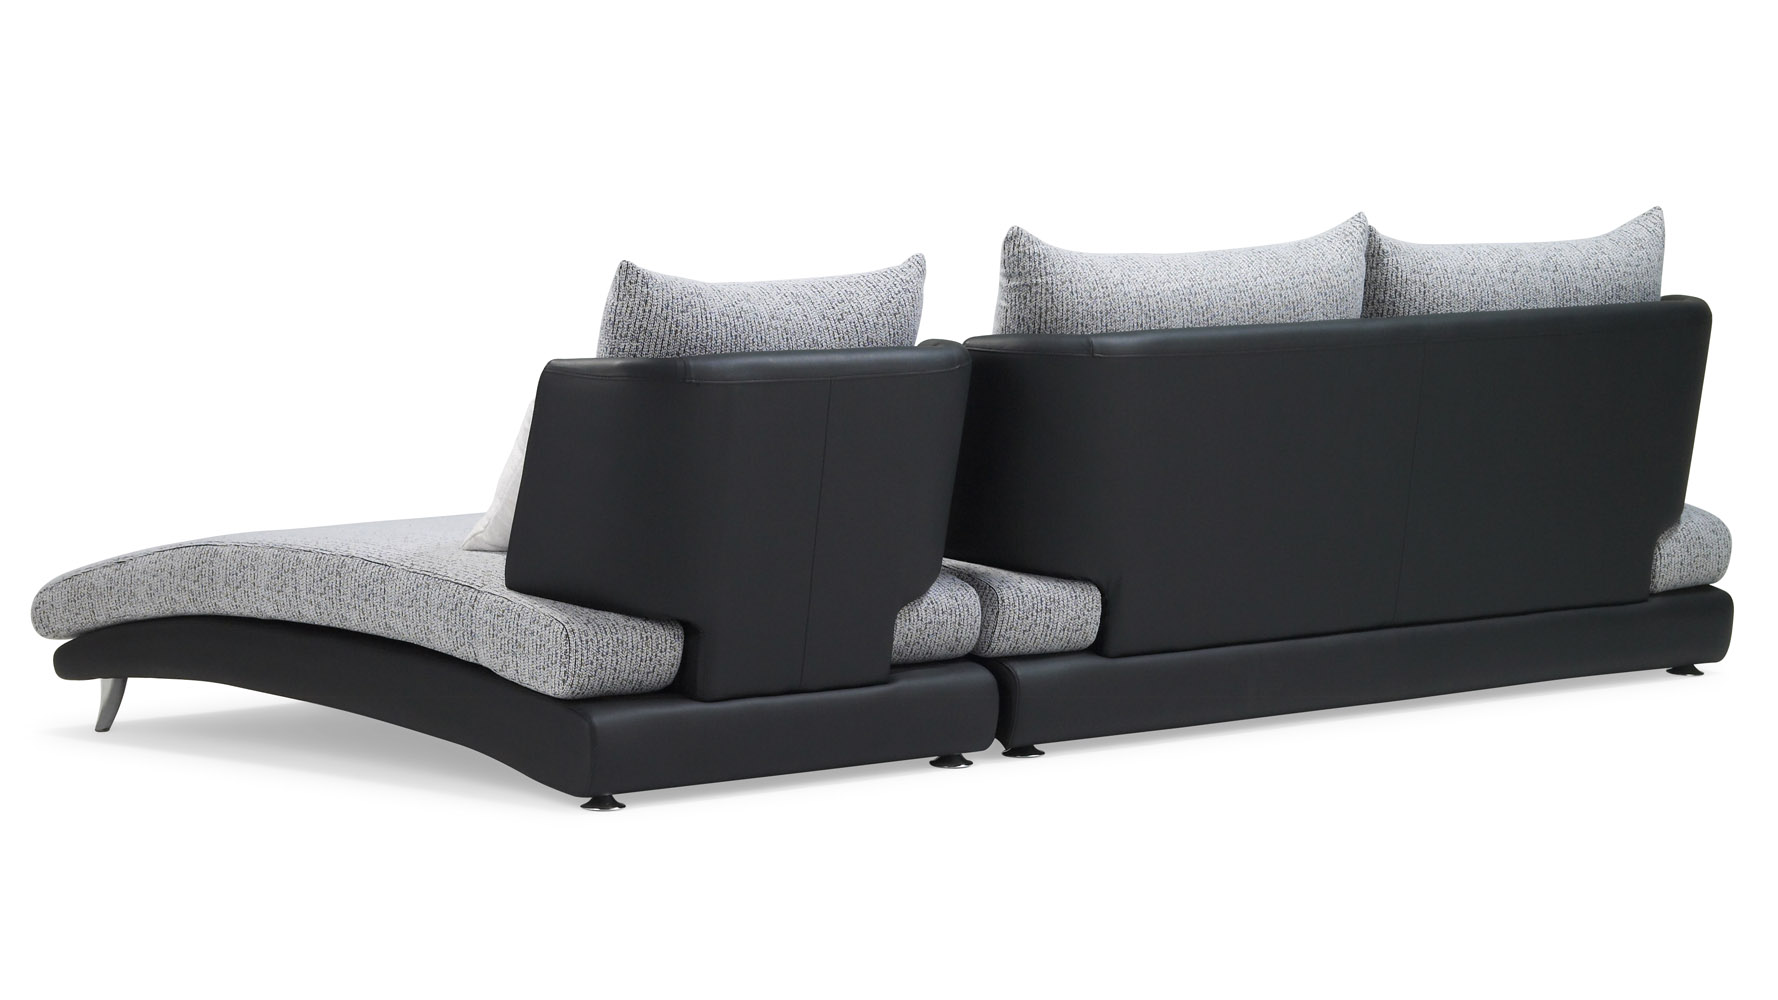 Modern Sofa Chaise Sof... Modern Sofa With Chaise Lounge